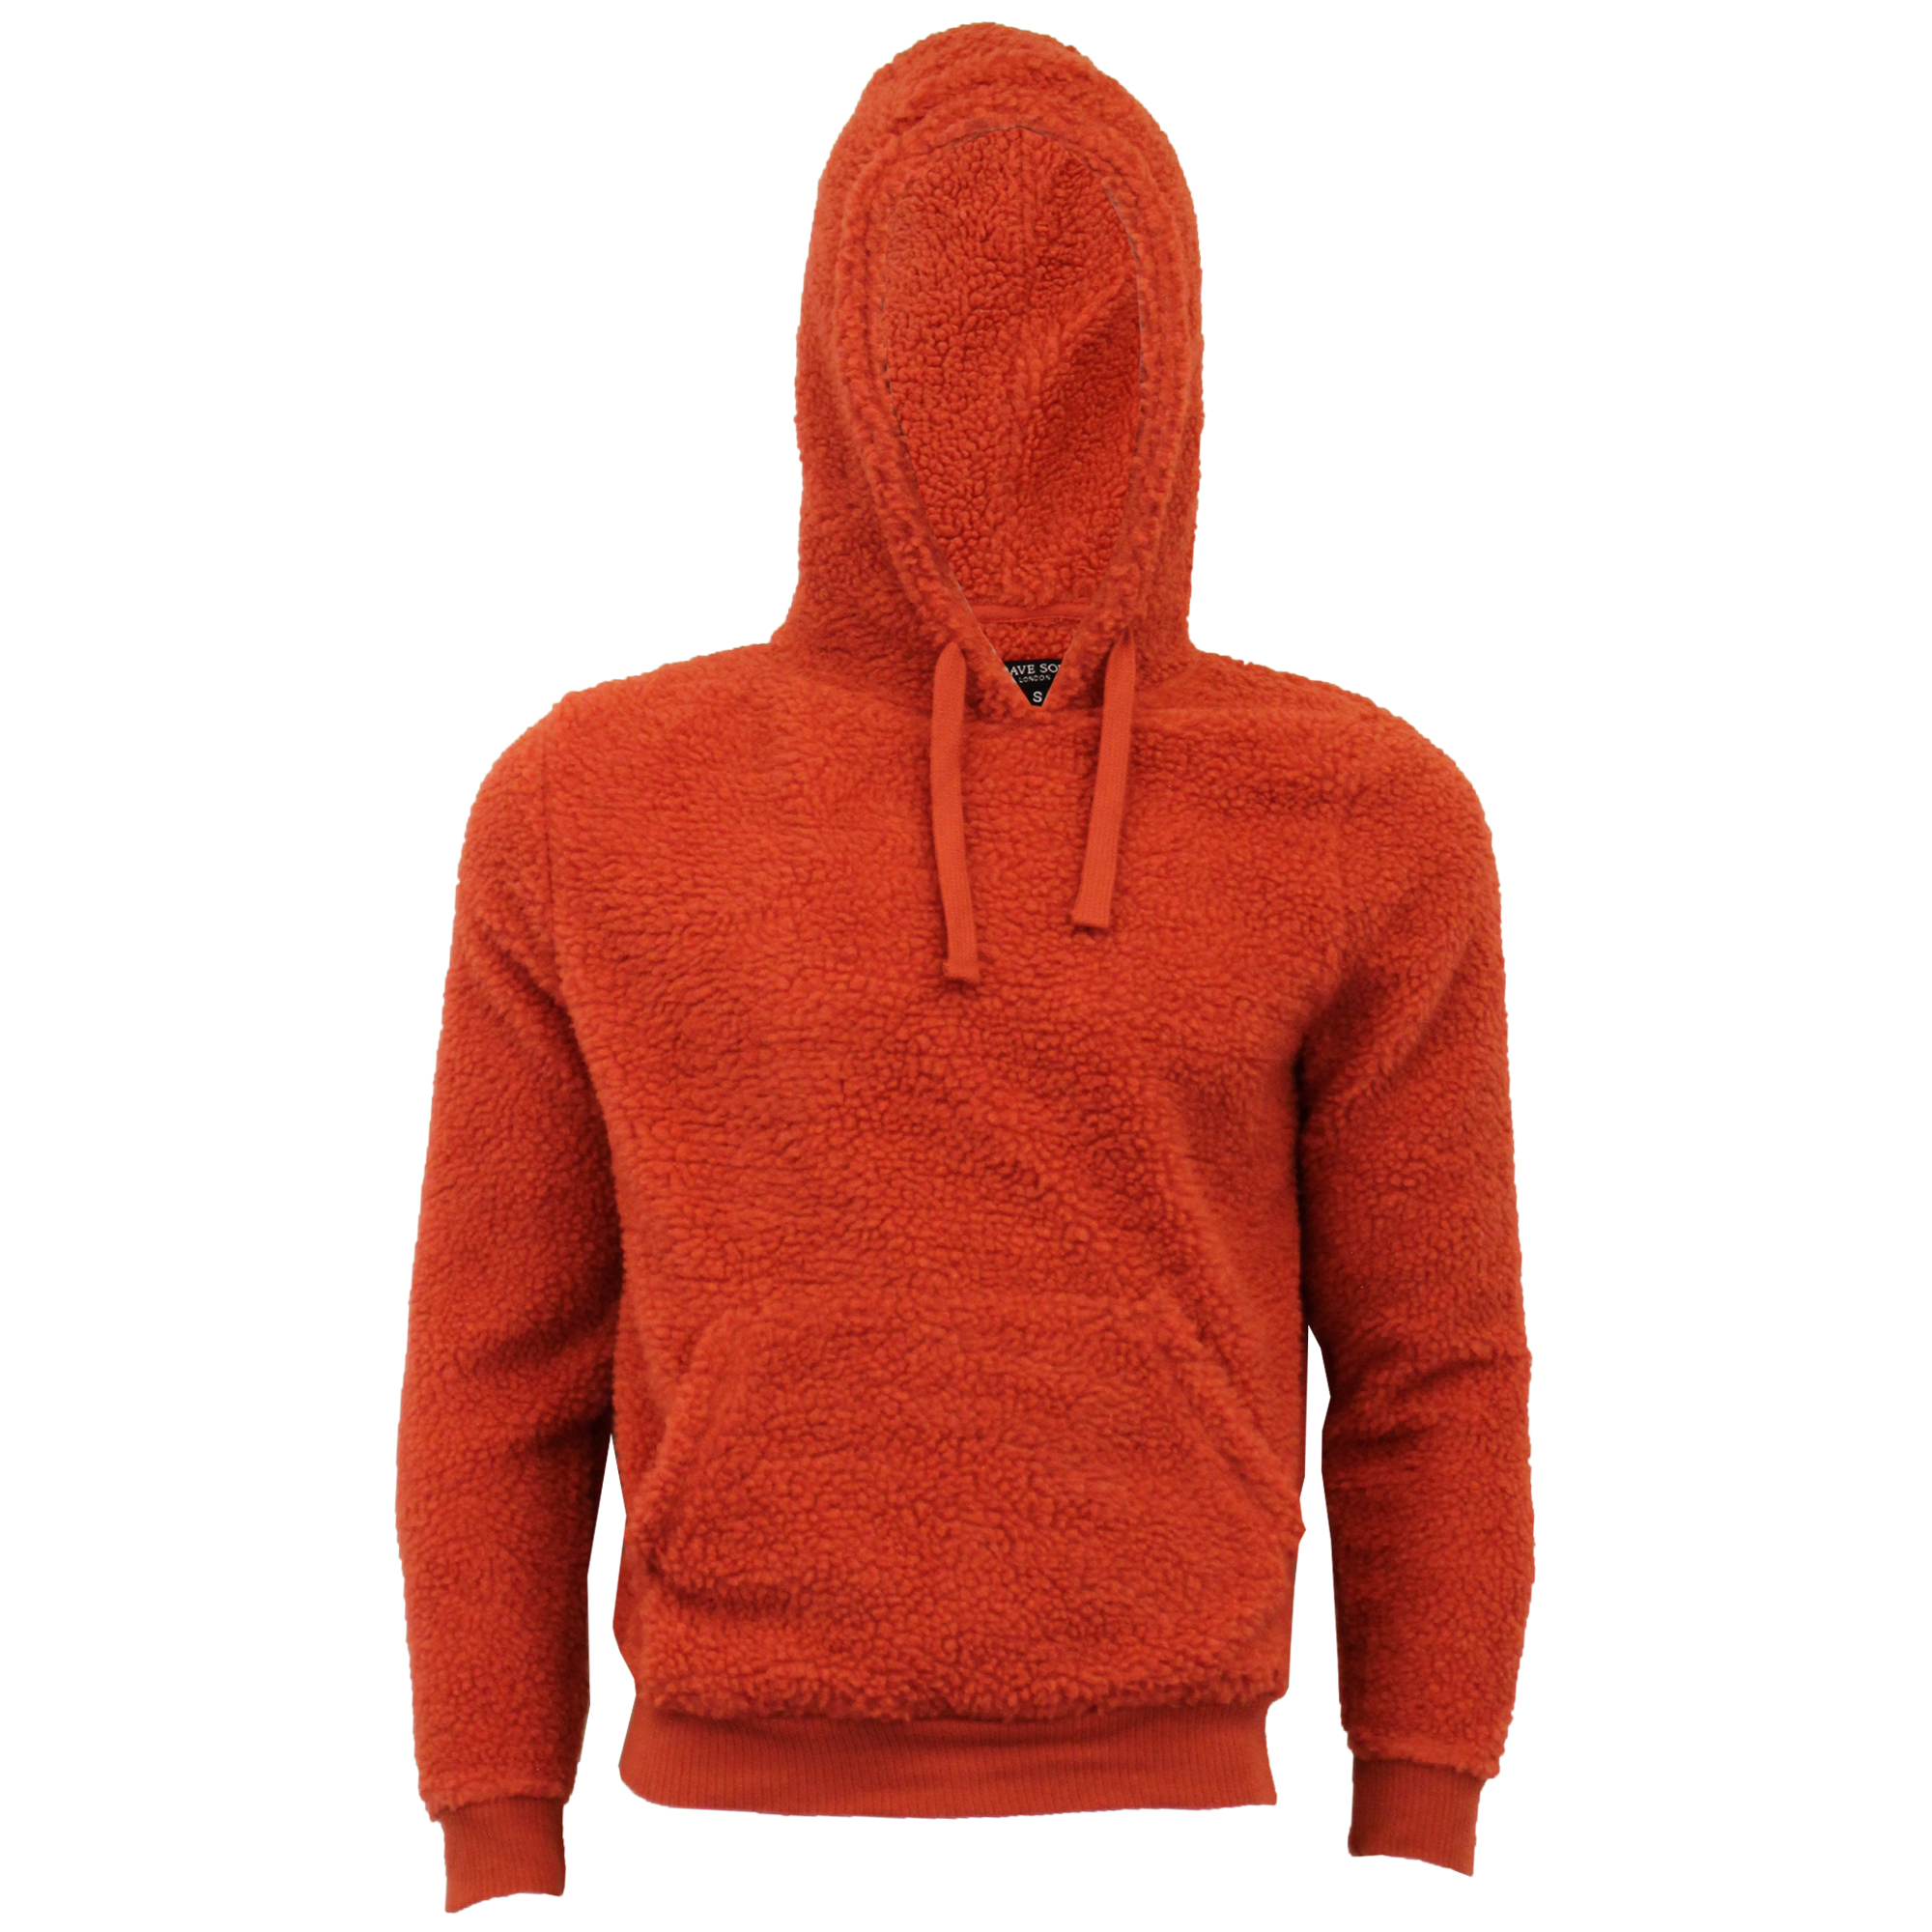 Mens-Sherpa-Fleece-Borg-Sweatshirt-Brave-Soul-Over-The-Head-GROMIT-Hooded-Top thumbnail 15